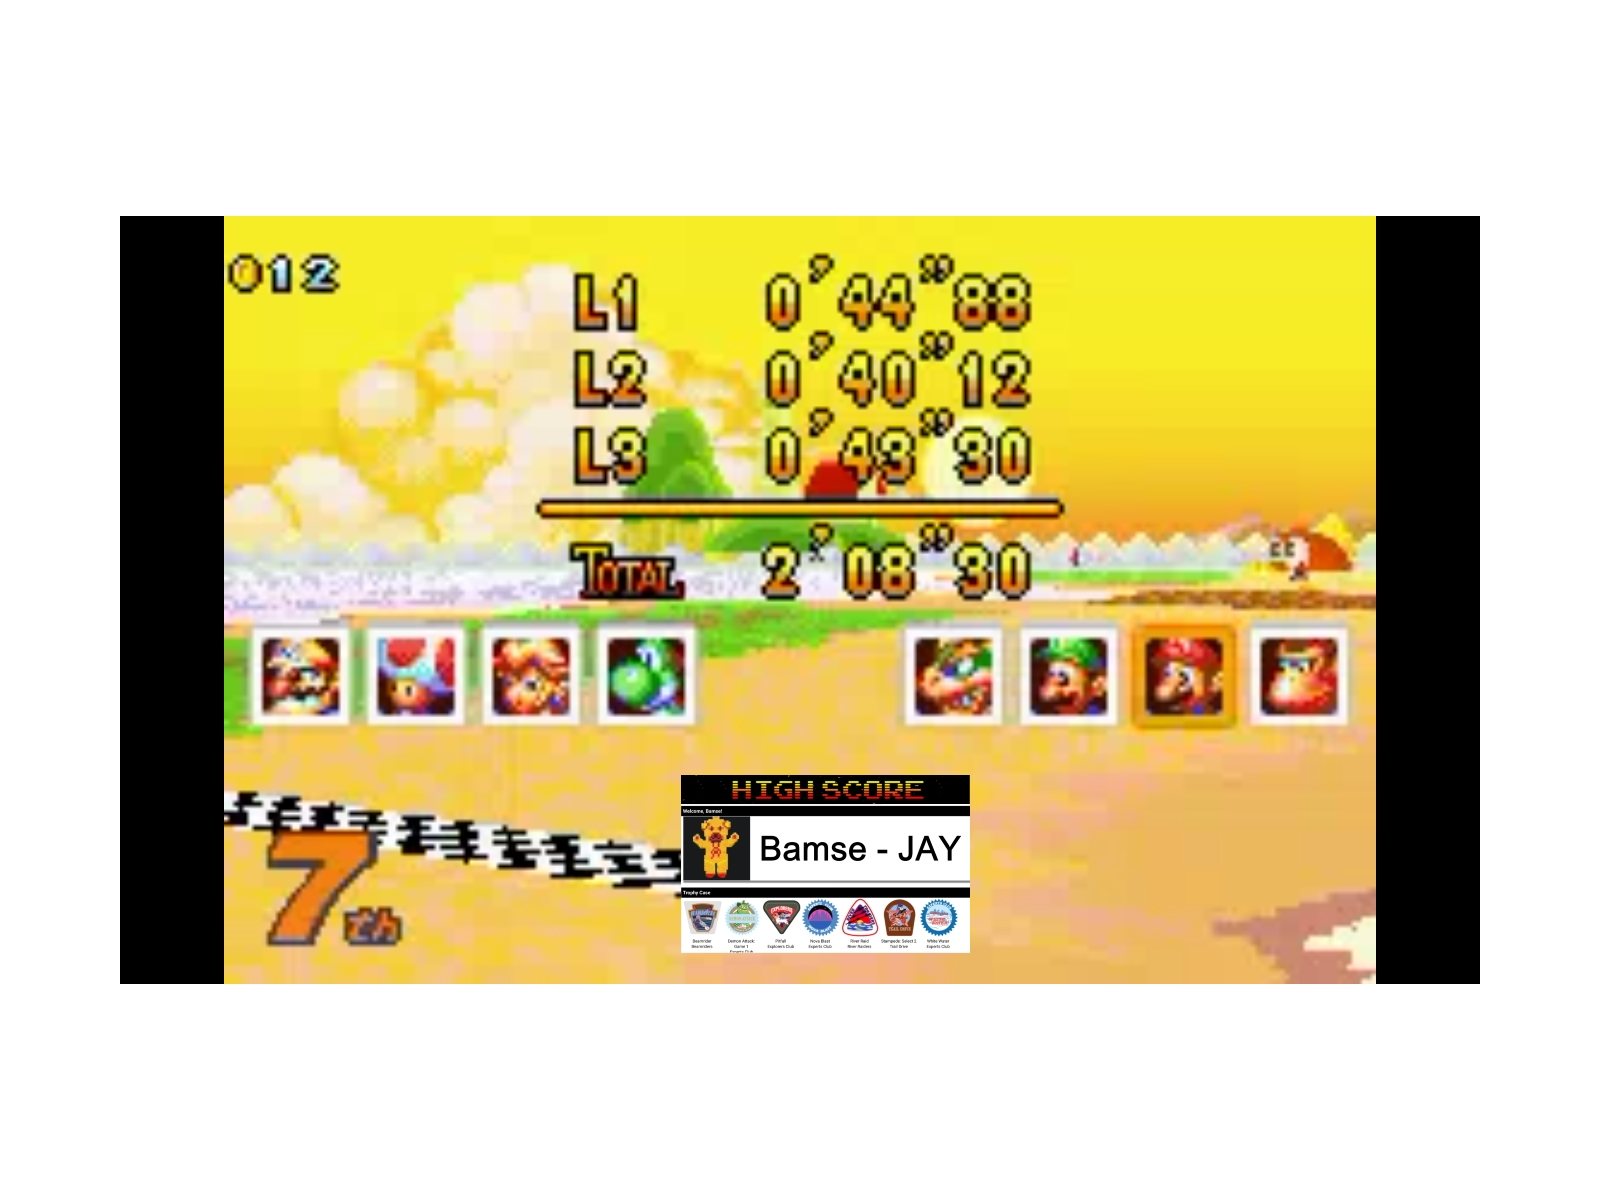 Bamse: Mario Kart Super Circuit: Cheep Cheep Island [150cc] [Lap Time] (GBA Emulated) 0:00:40.12 points on 2019-12-17 13:21:03